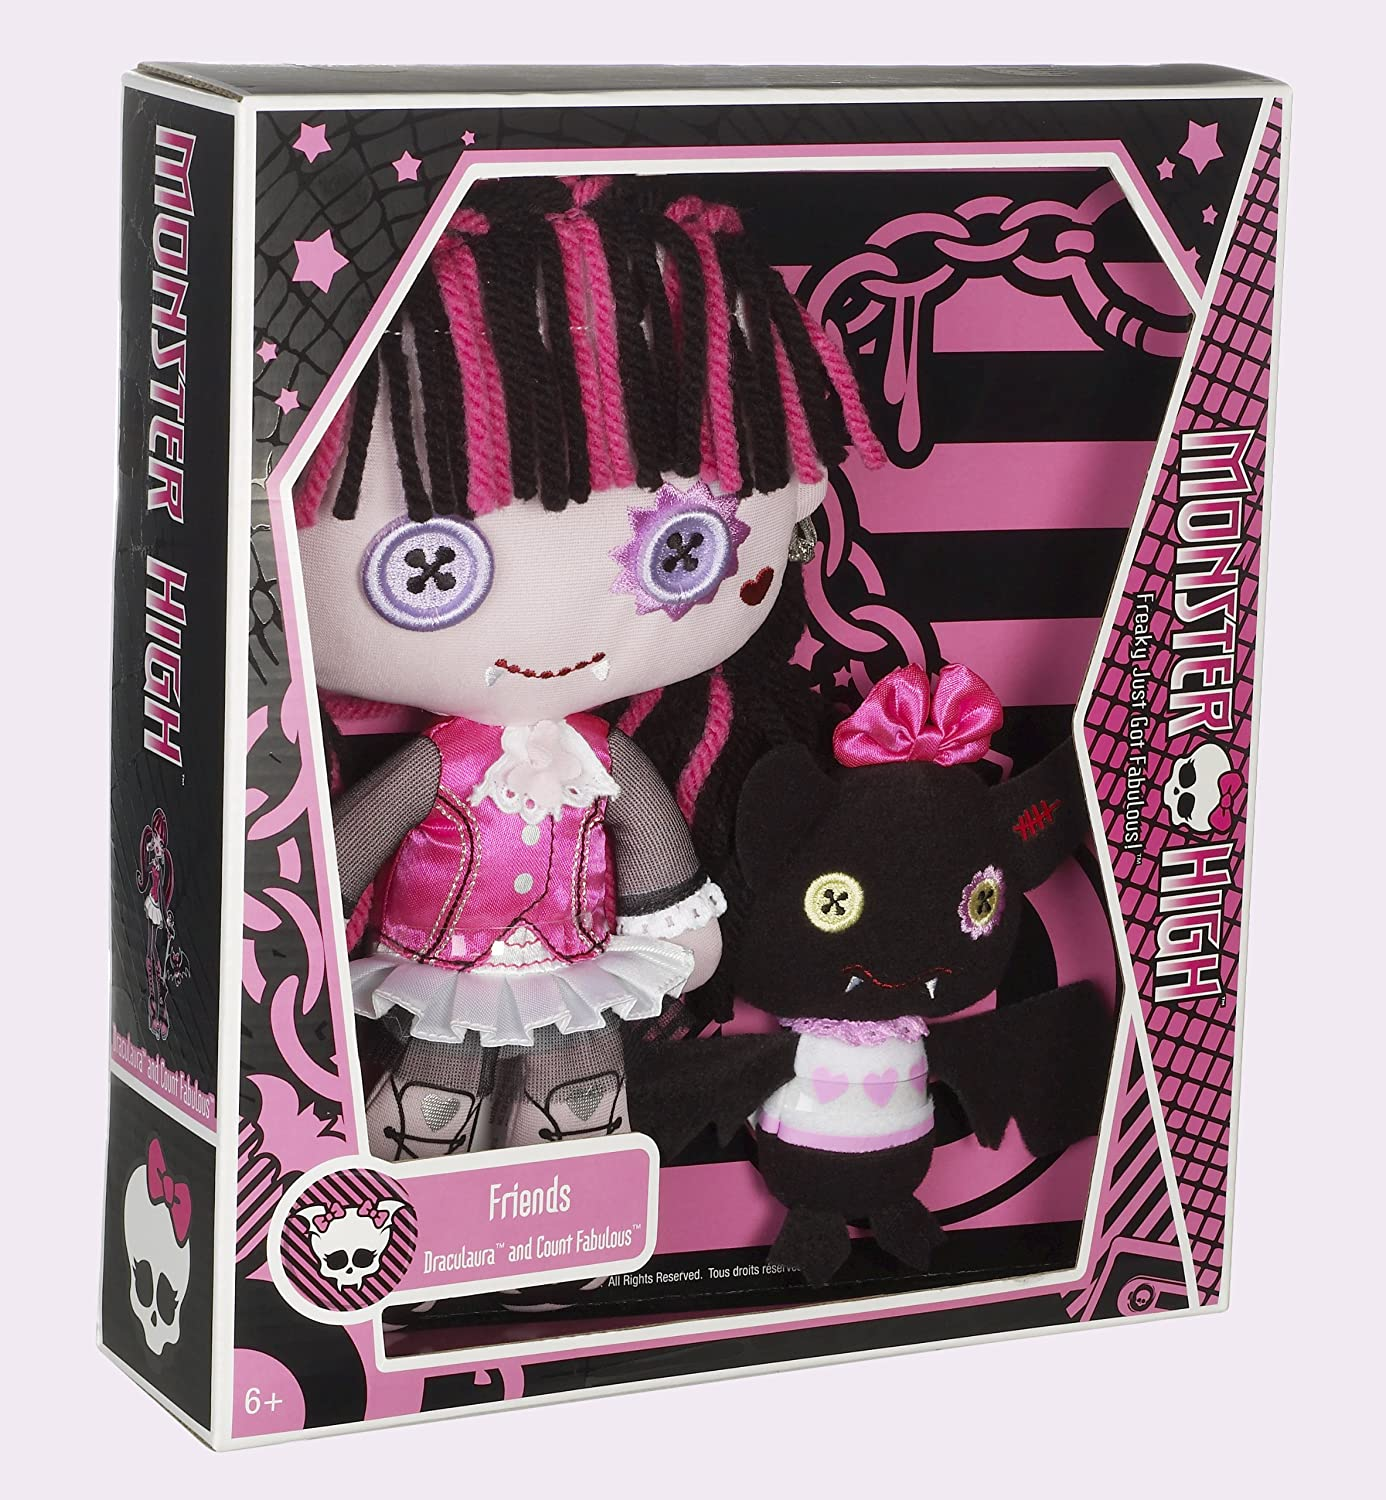 Amazoncom Monster High Friends Plush Draculaura Doll Toys  Games